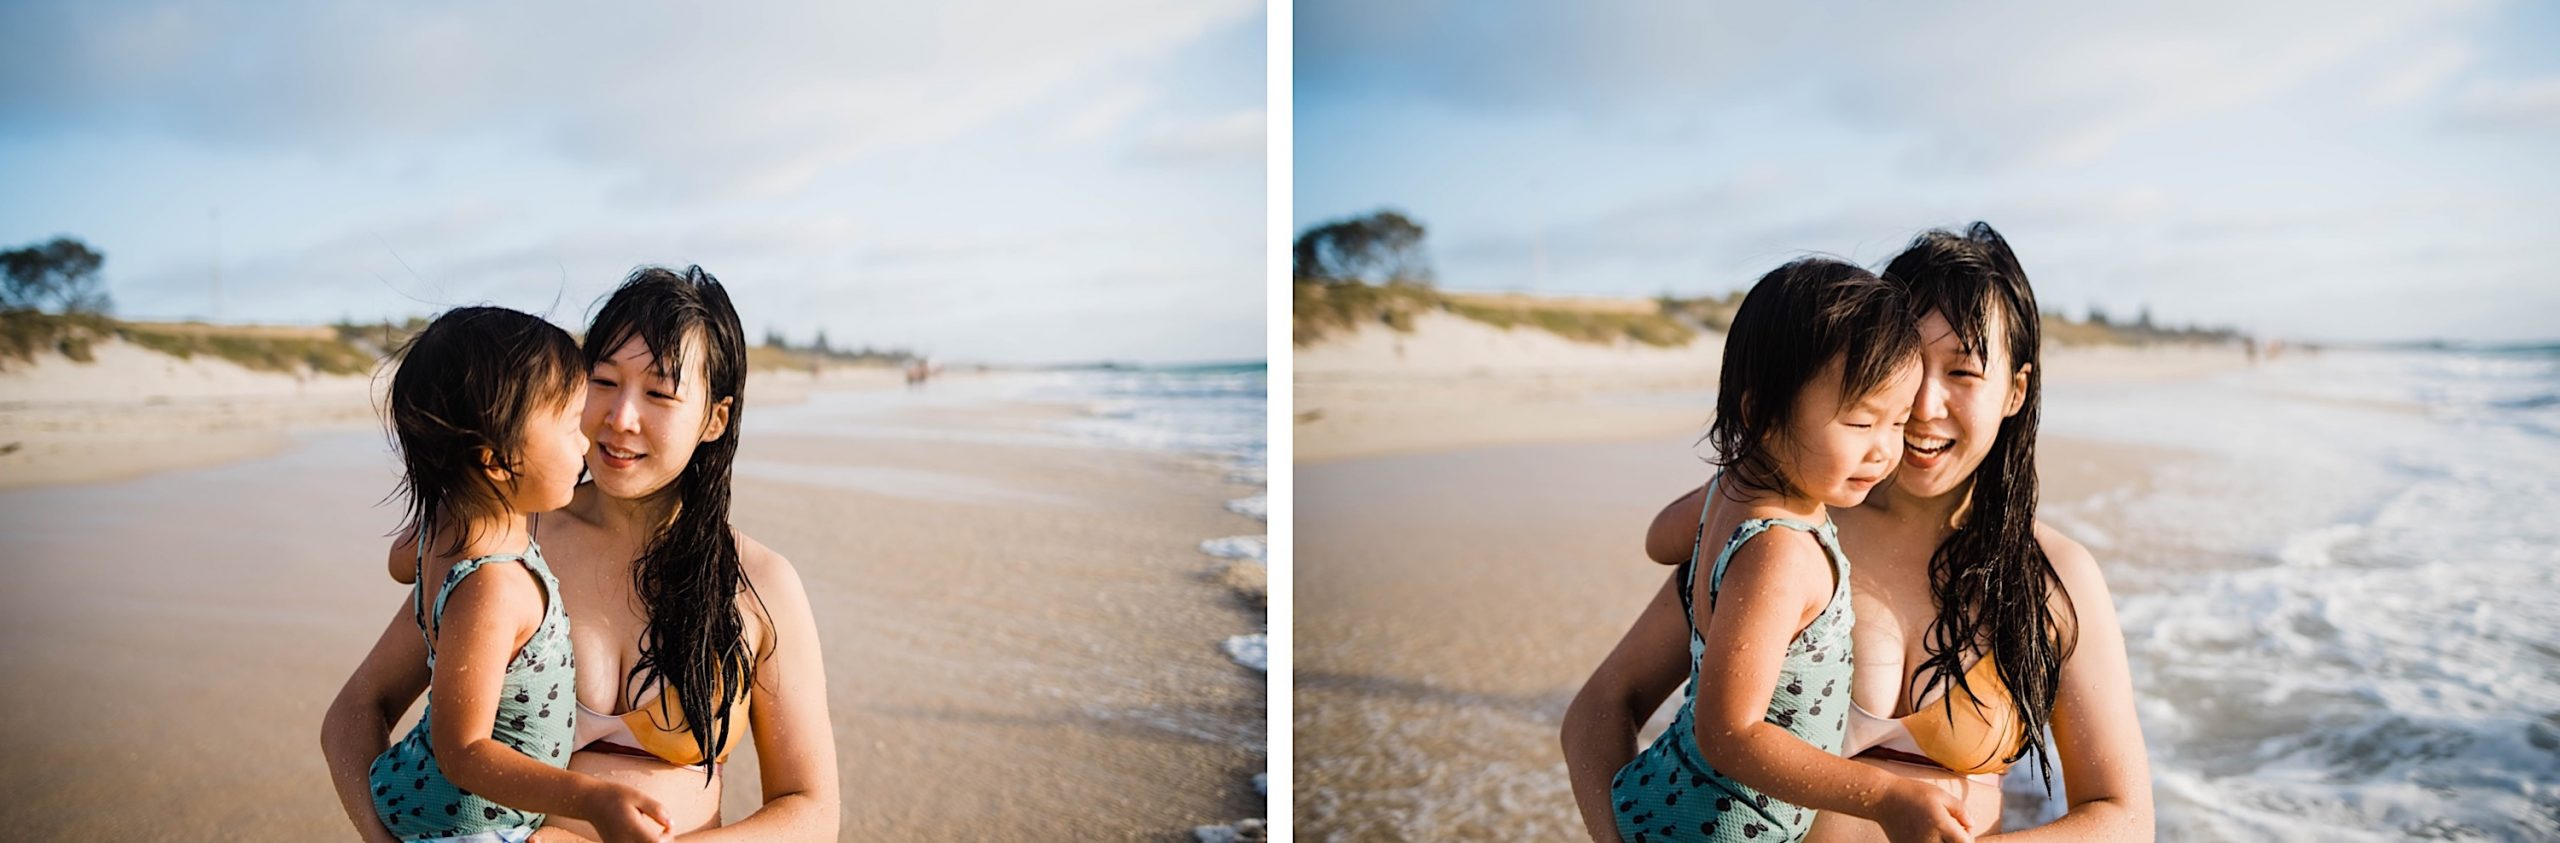 Two photos, side-by-side, of a Mum and her daughter standing on the beach at sunset as waves rush up the beach behind them.